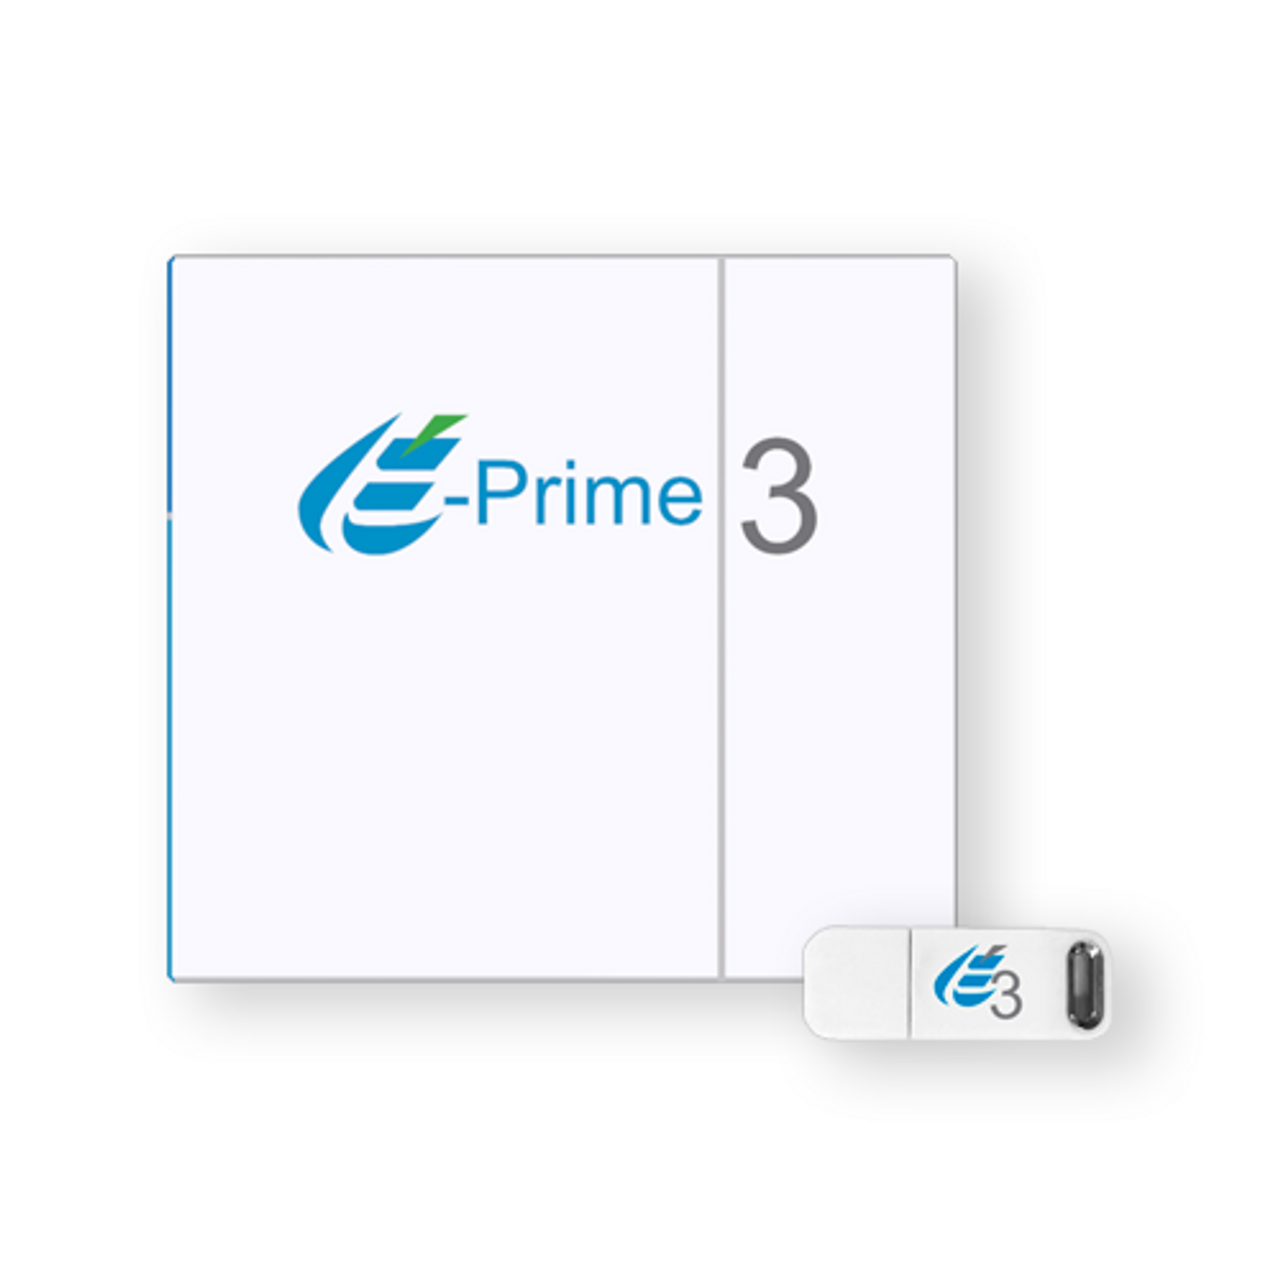 E-Prime 3.0 Single-User License